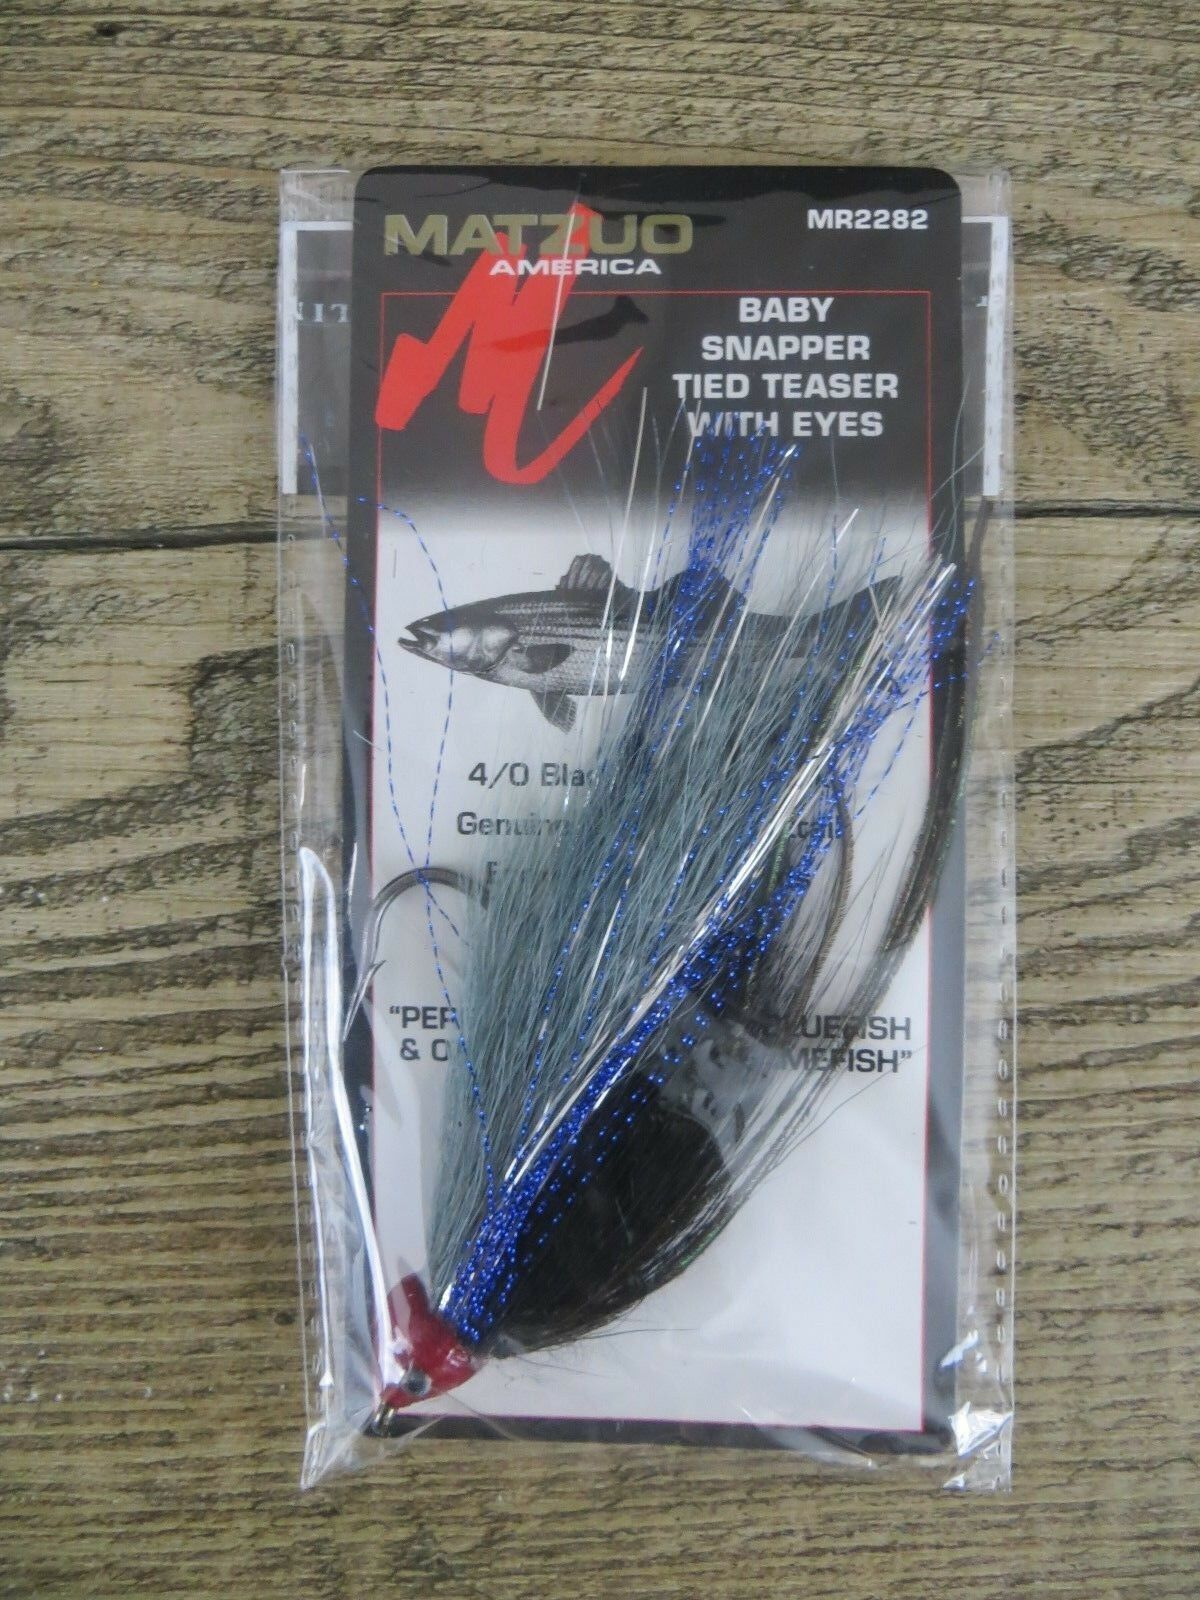 4 Matzuo baby snapper tied teasers with eyes MR2282